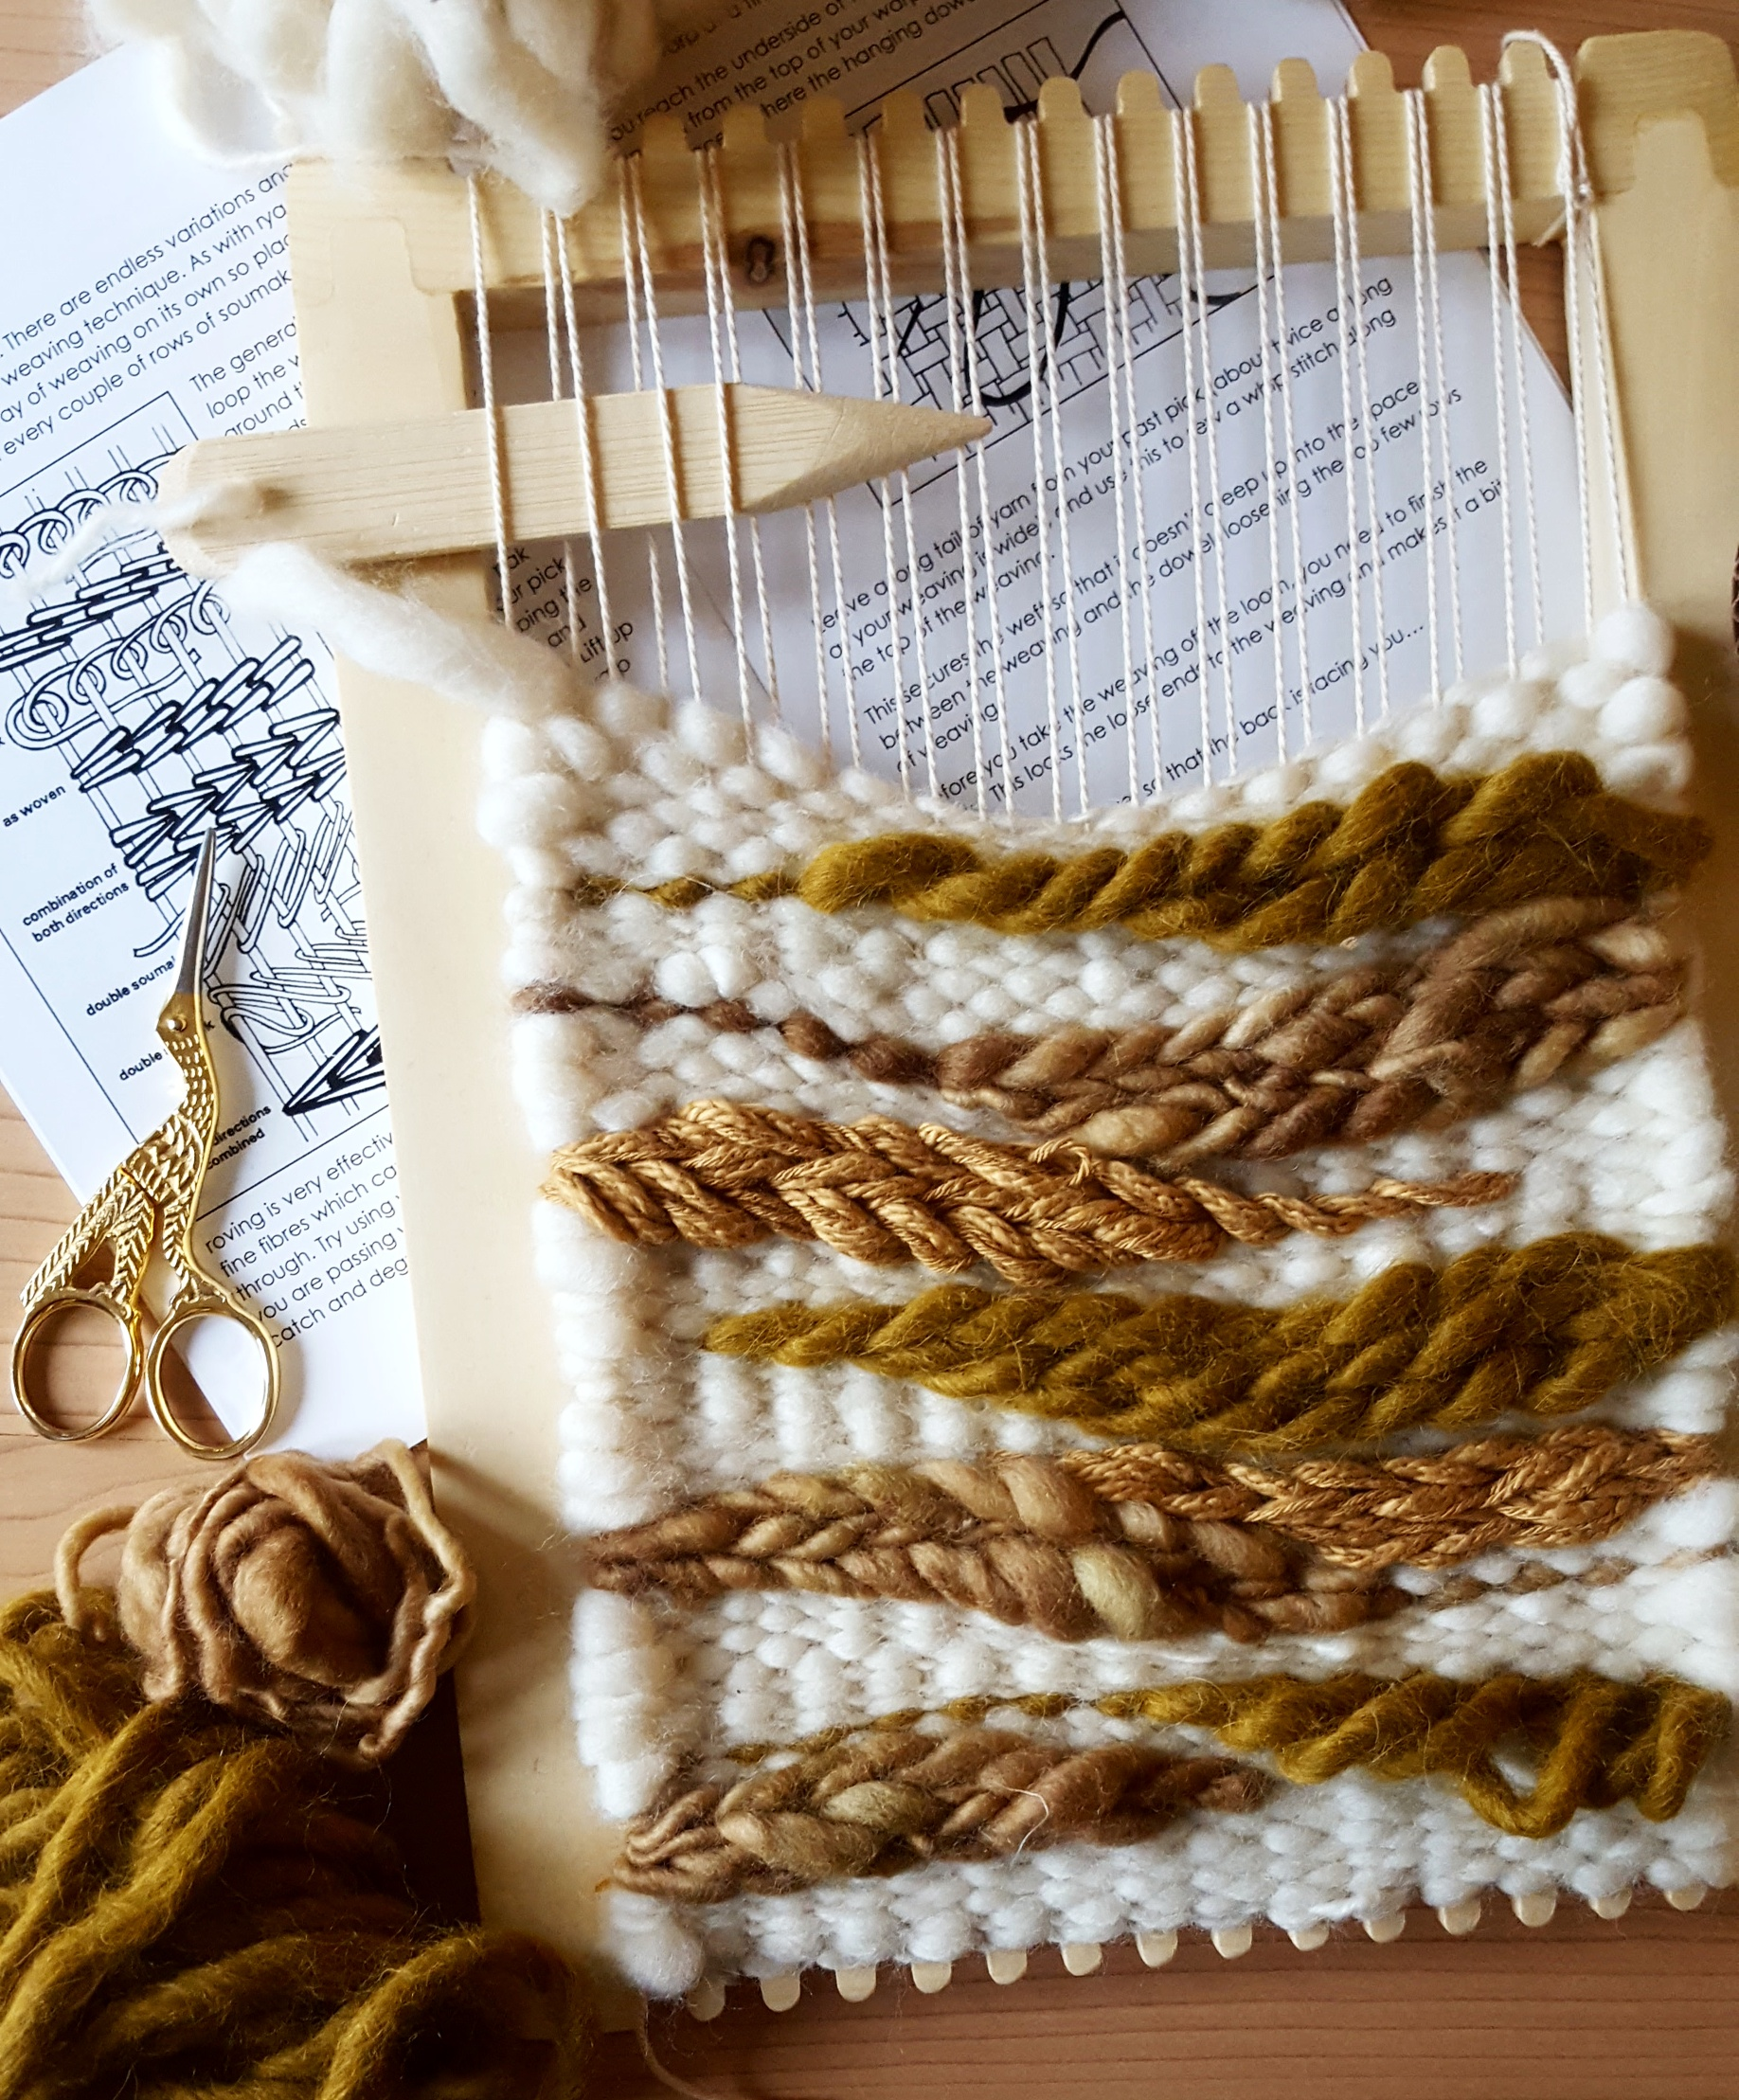 upcoming weaving workshops in Vancouver and Victoria with Lucy Poskitt